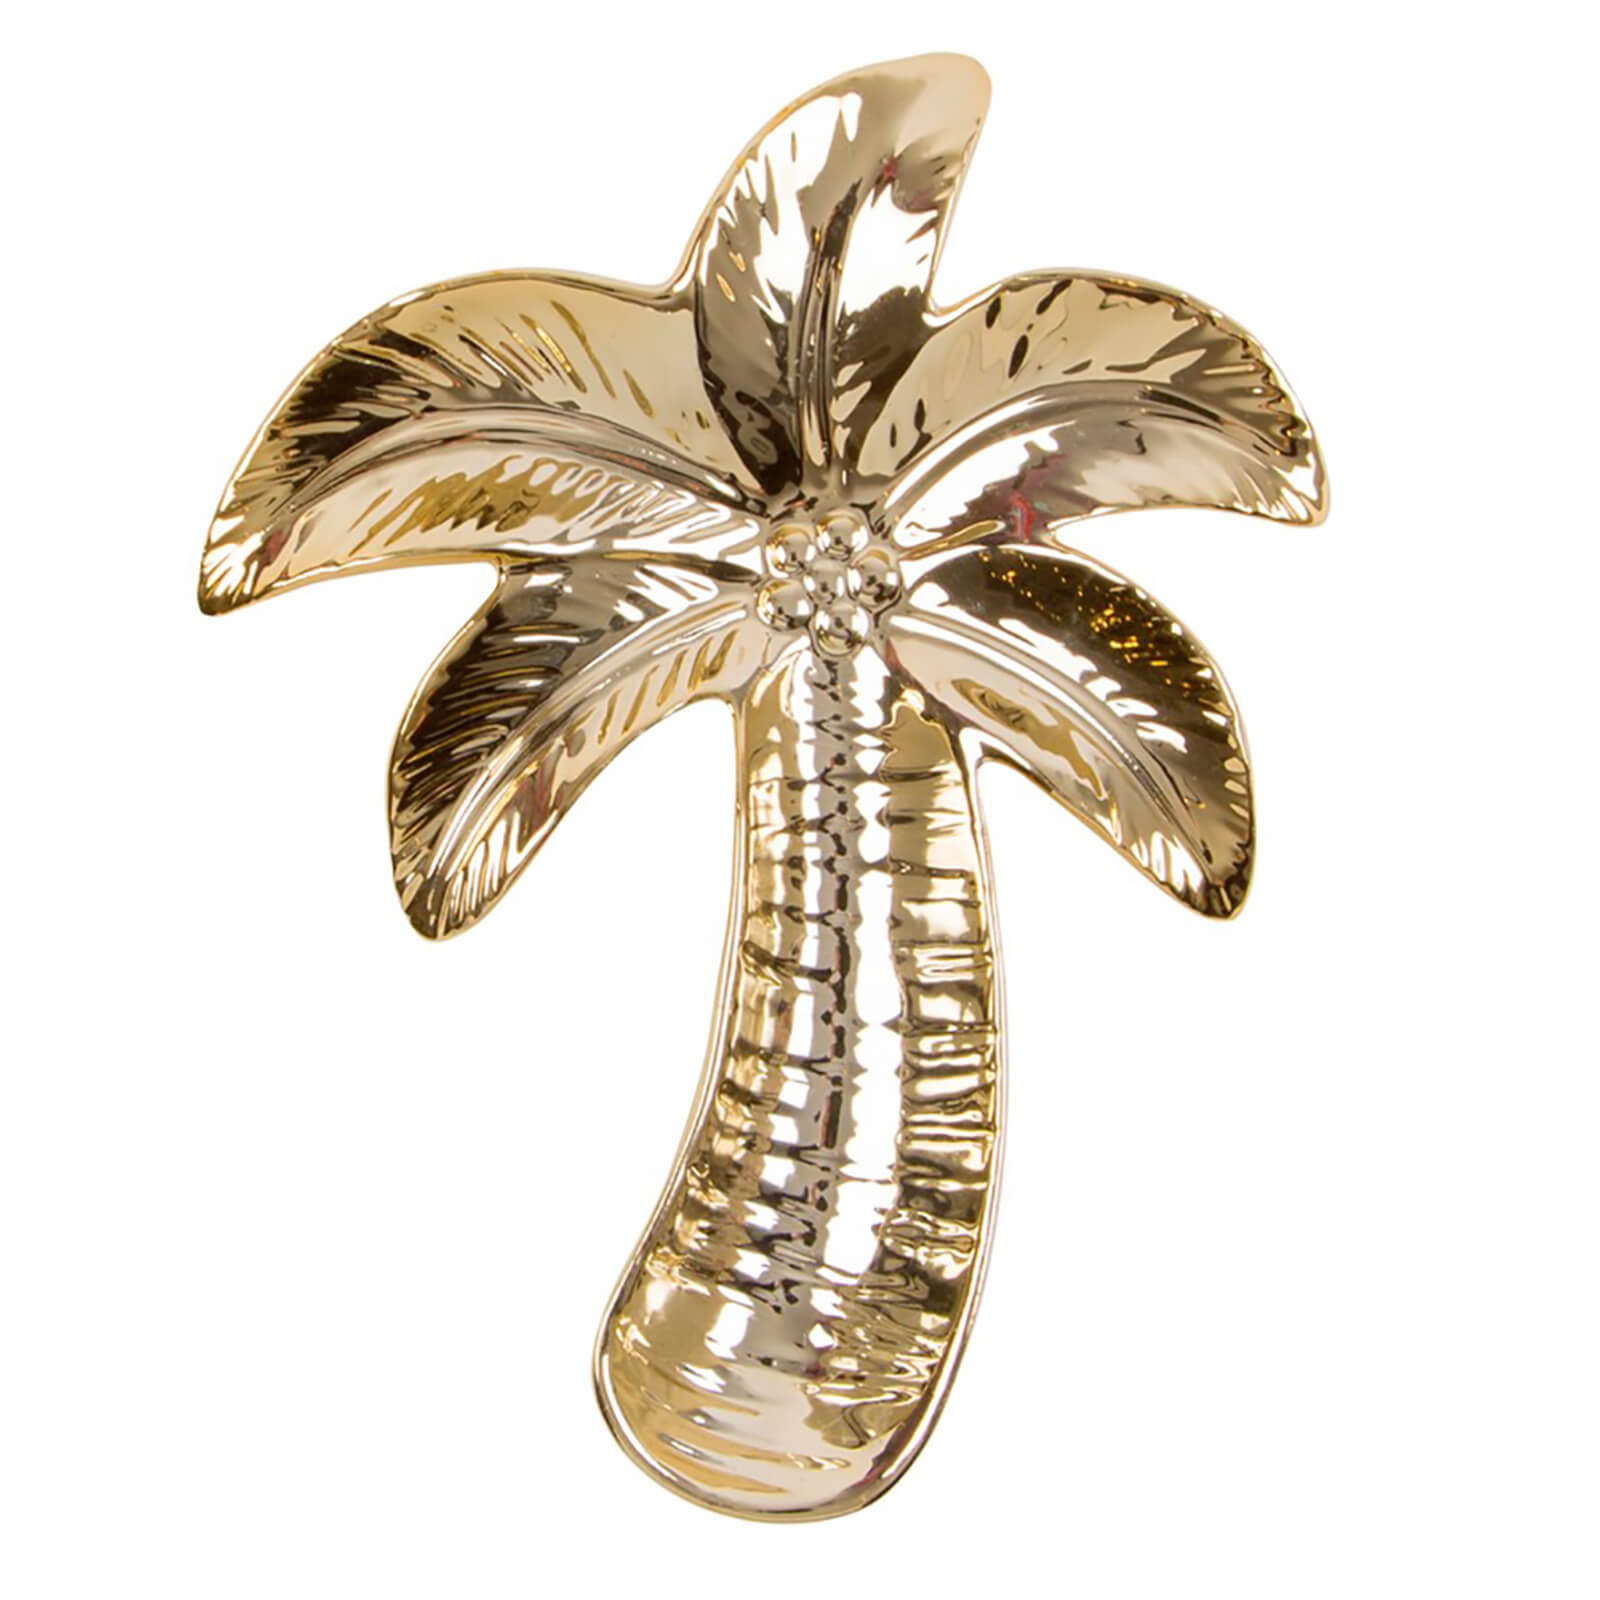 Sass & Belle Gold Palm Tree Shaped Trinket Dish